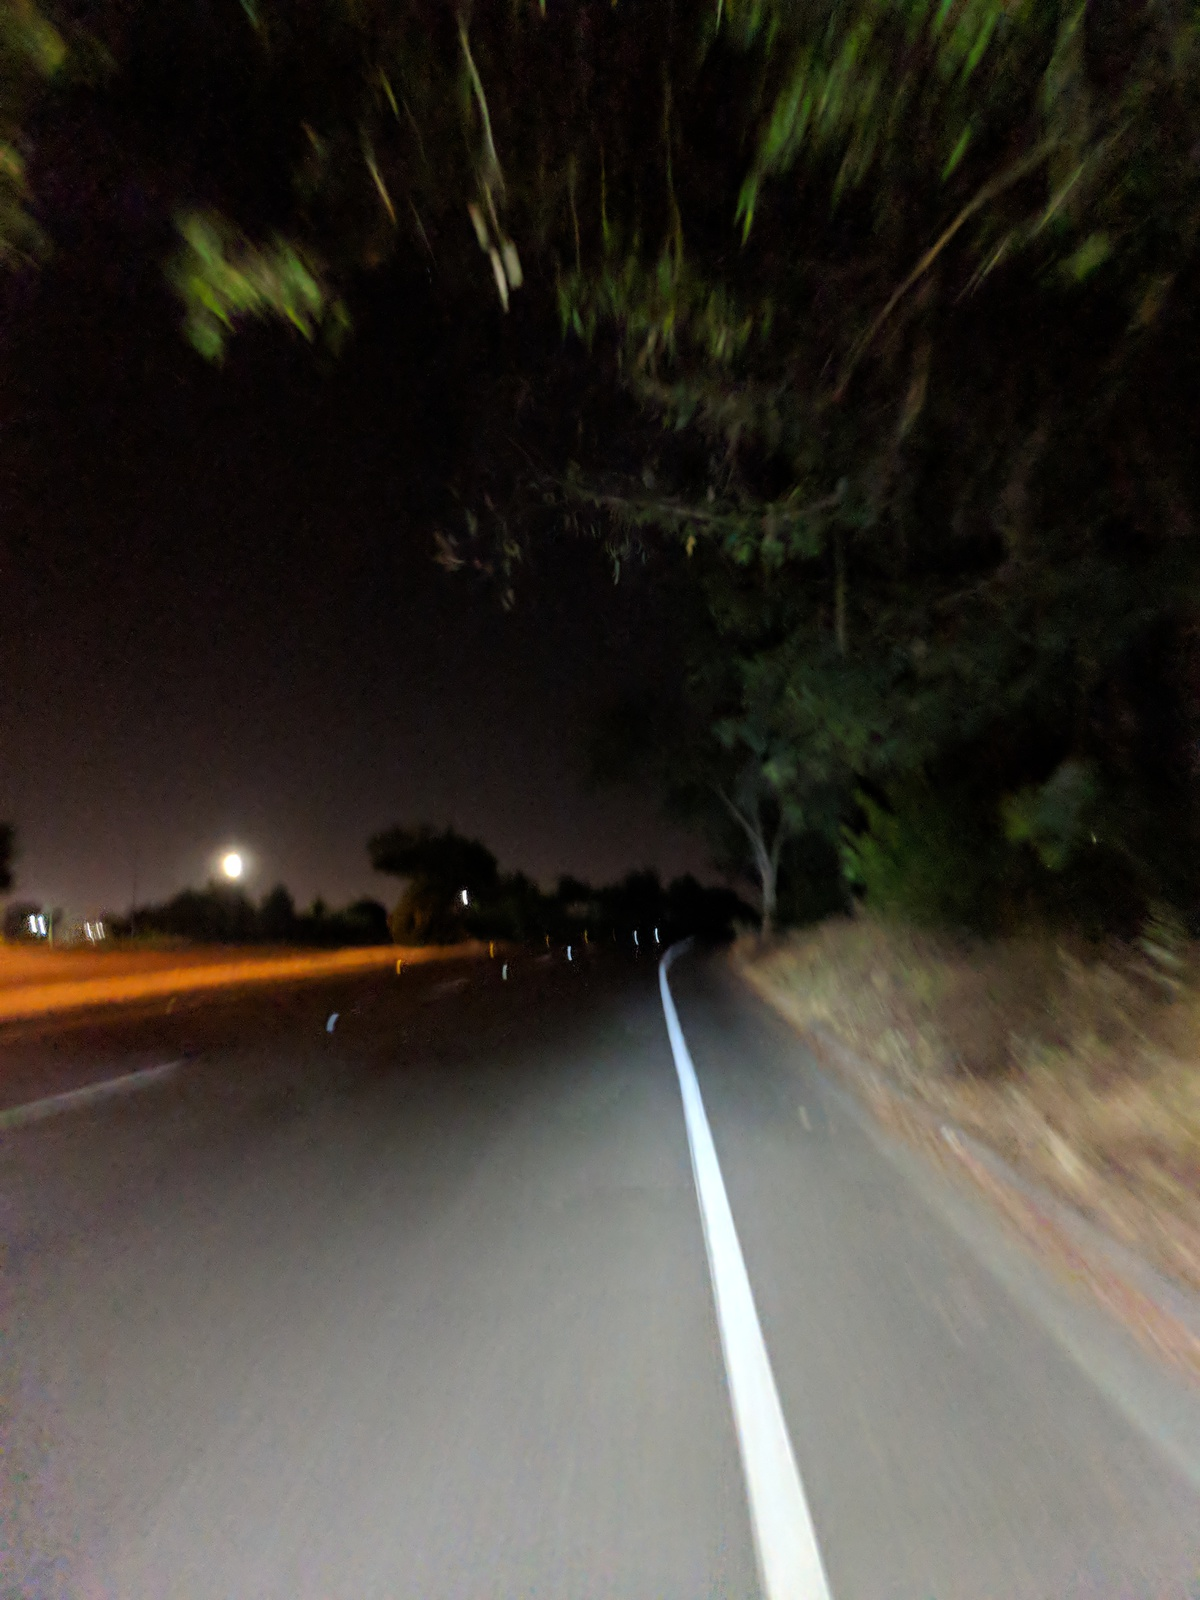 a blurry road at night, lit by headlamp, with trees whizzing by